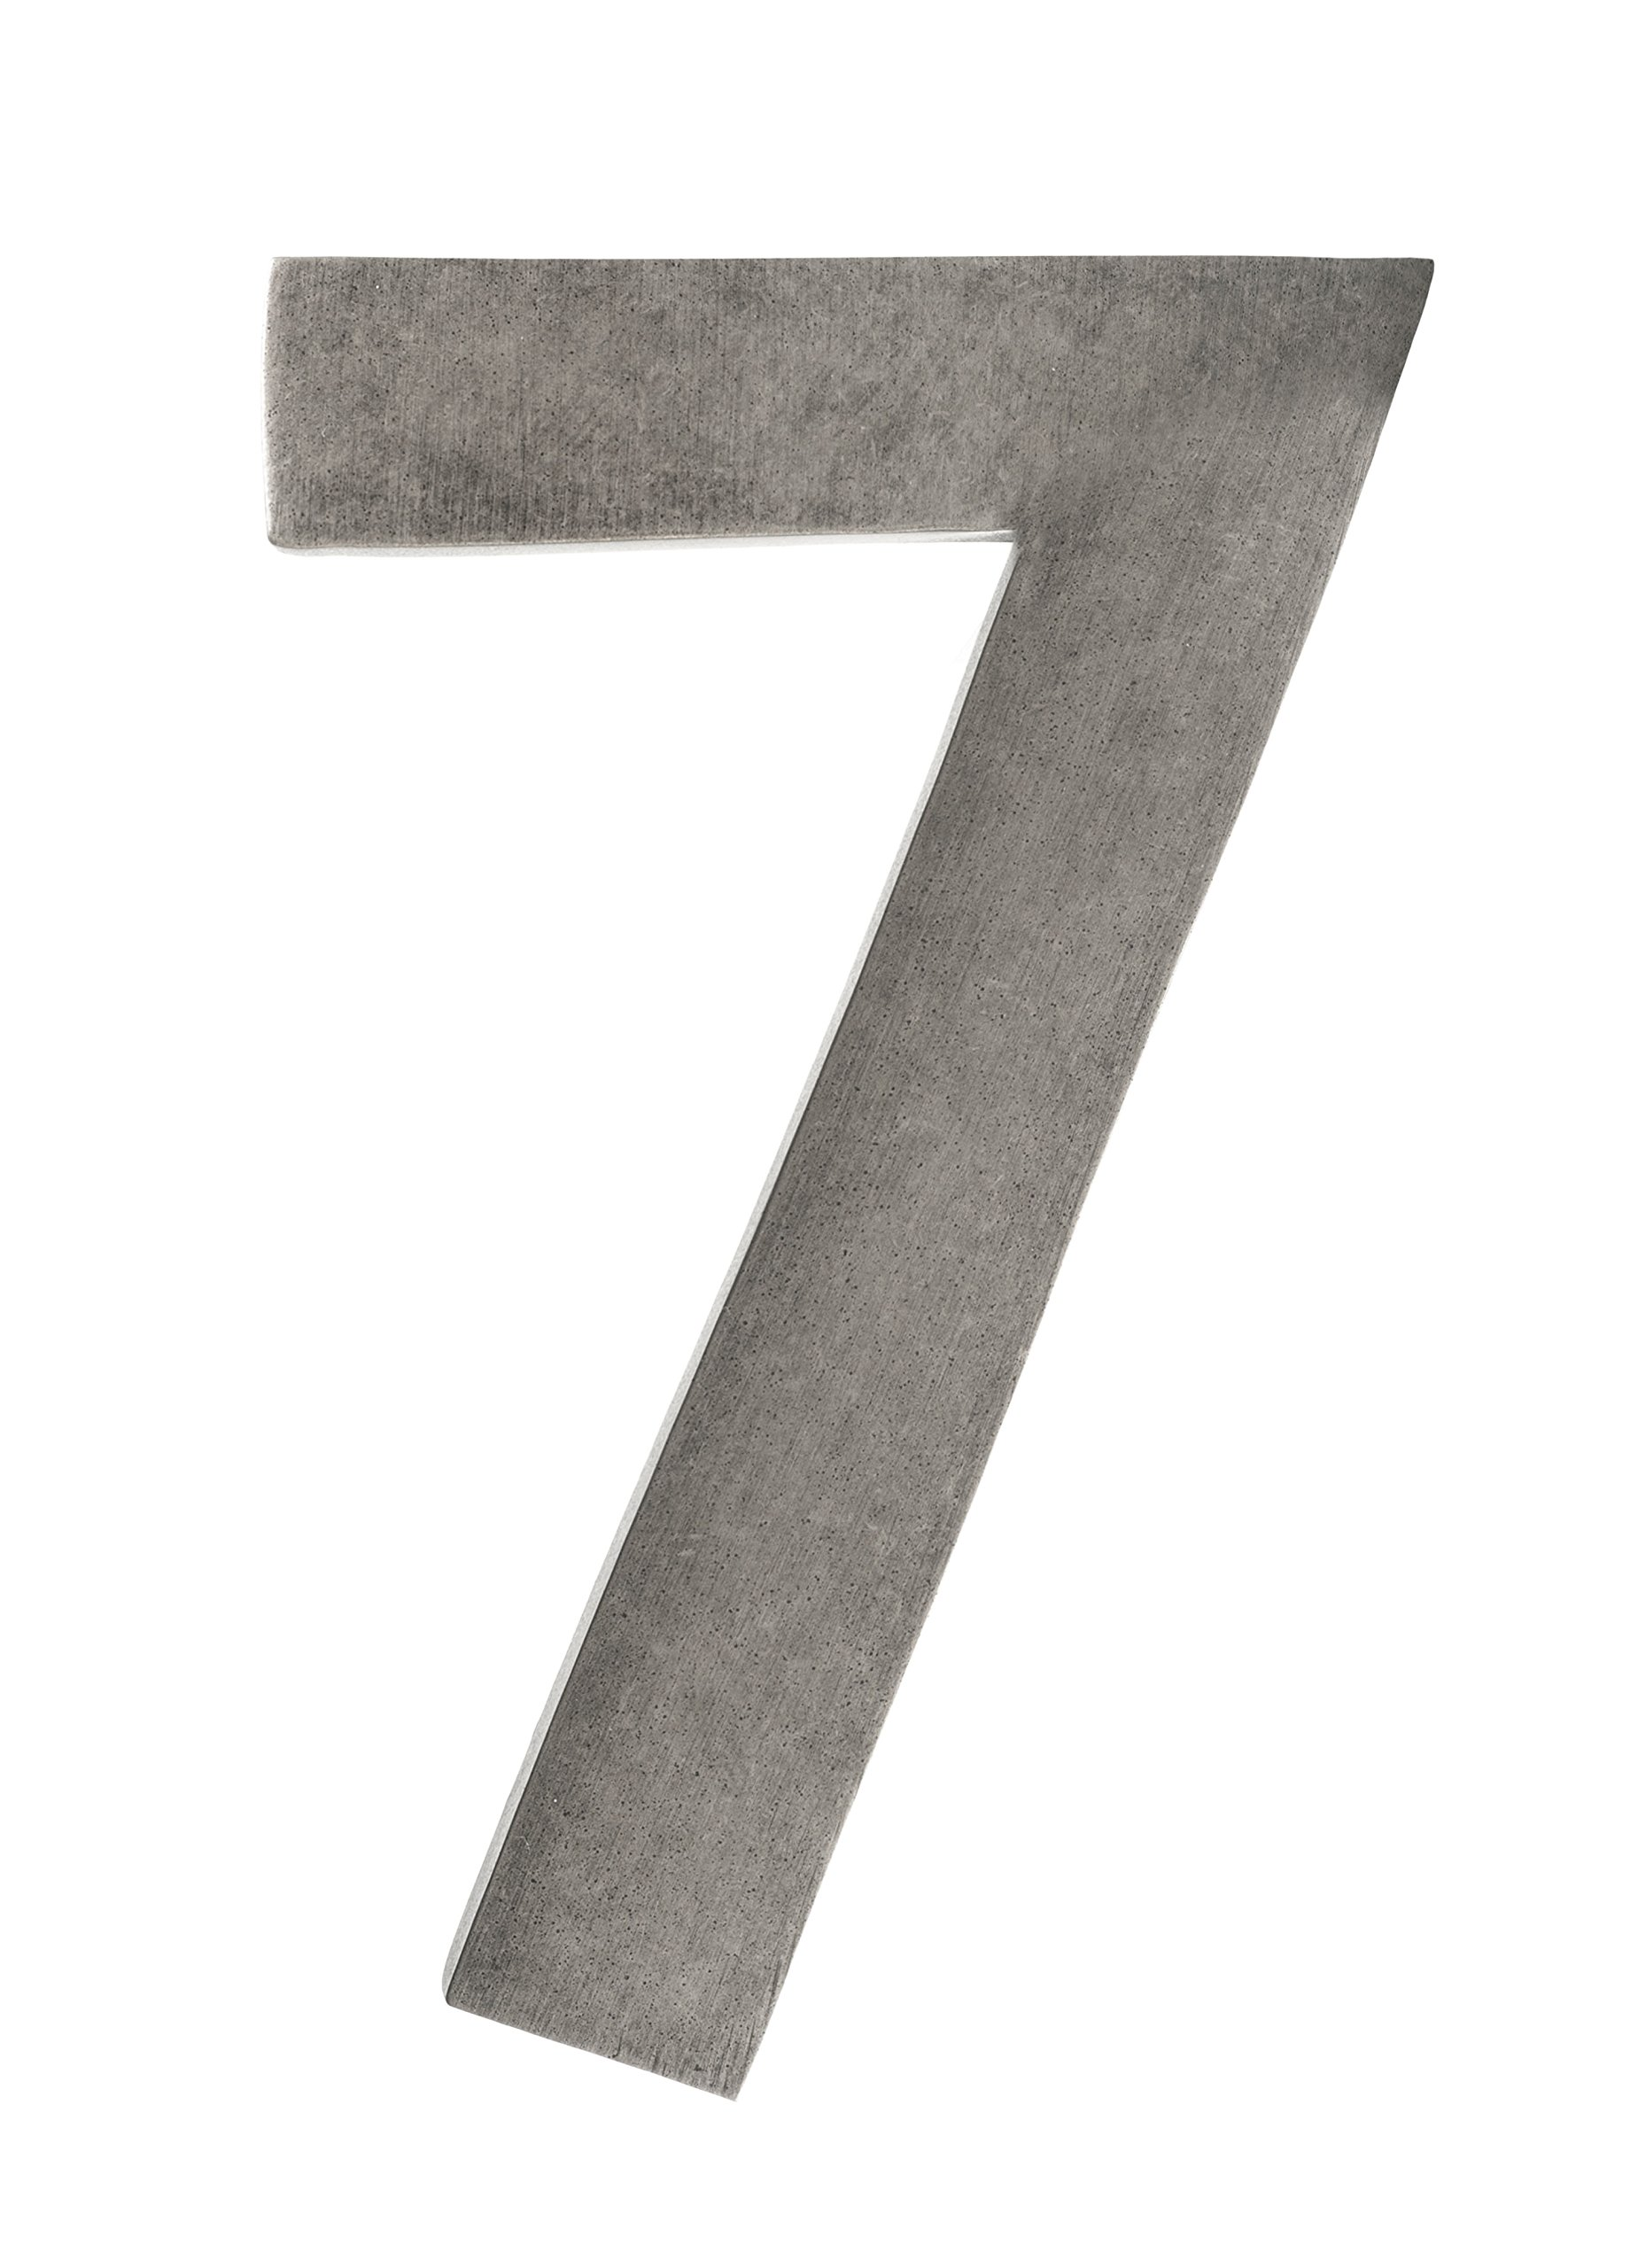 Architectural Mailboxes 3582APA-7 4 in. Brass Floating House Number 7, Antique Pewter by ARCHITECTURAL MAILBOXES